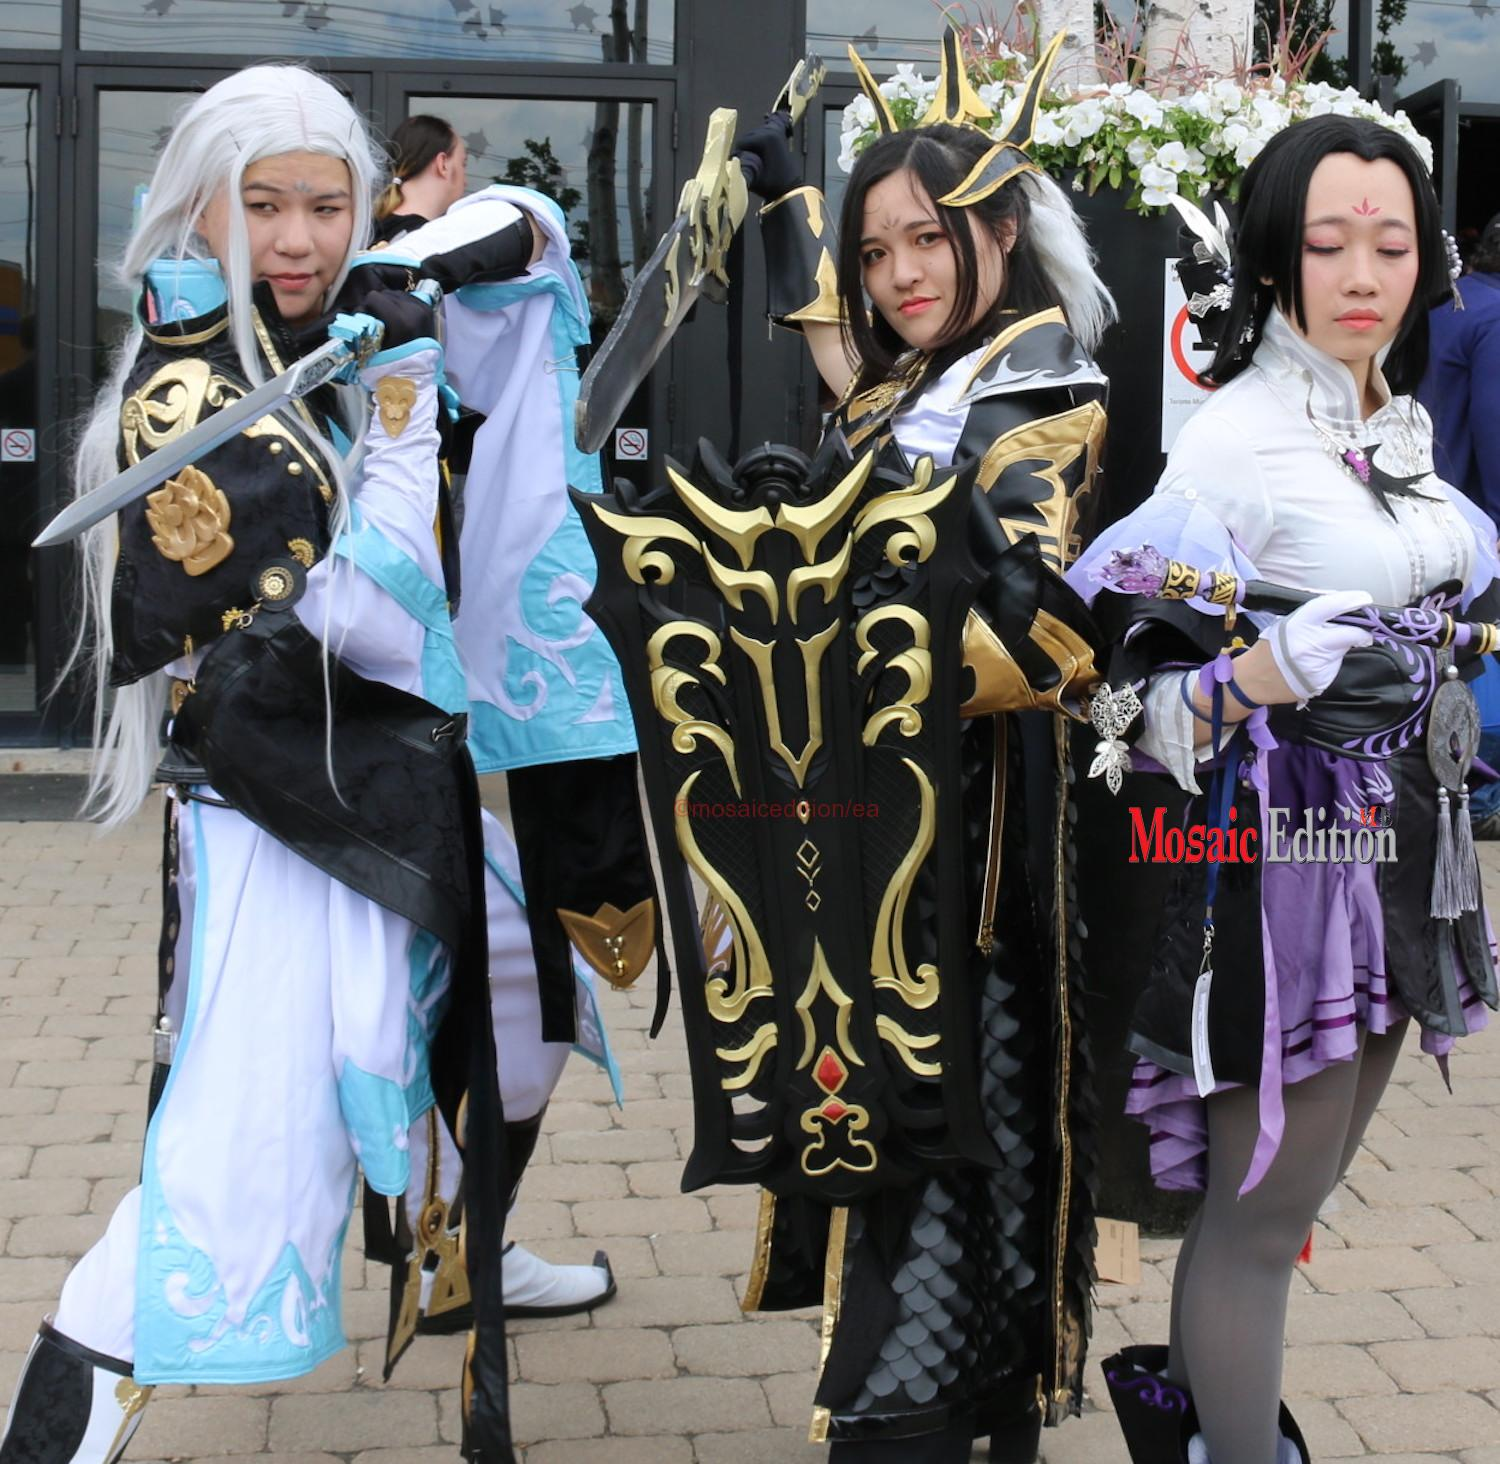 Anime north 2017 featured creative costumes roleplay cosplaypop culture manga japanese